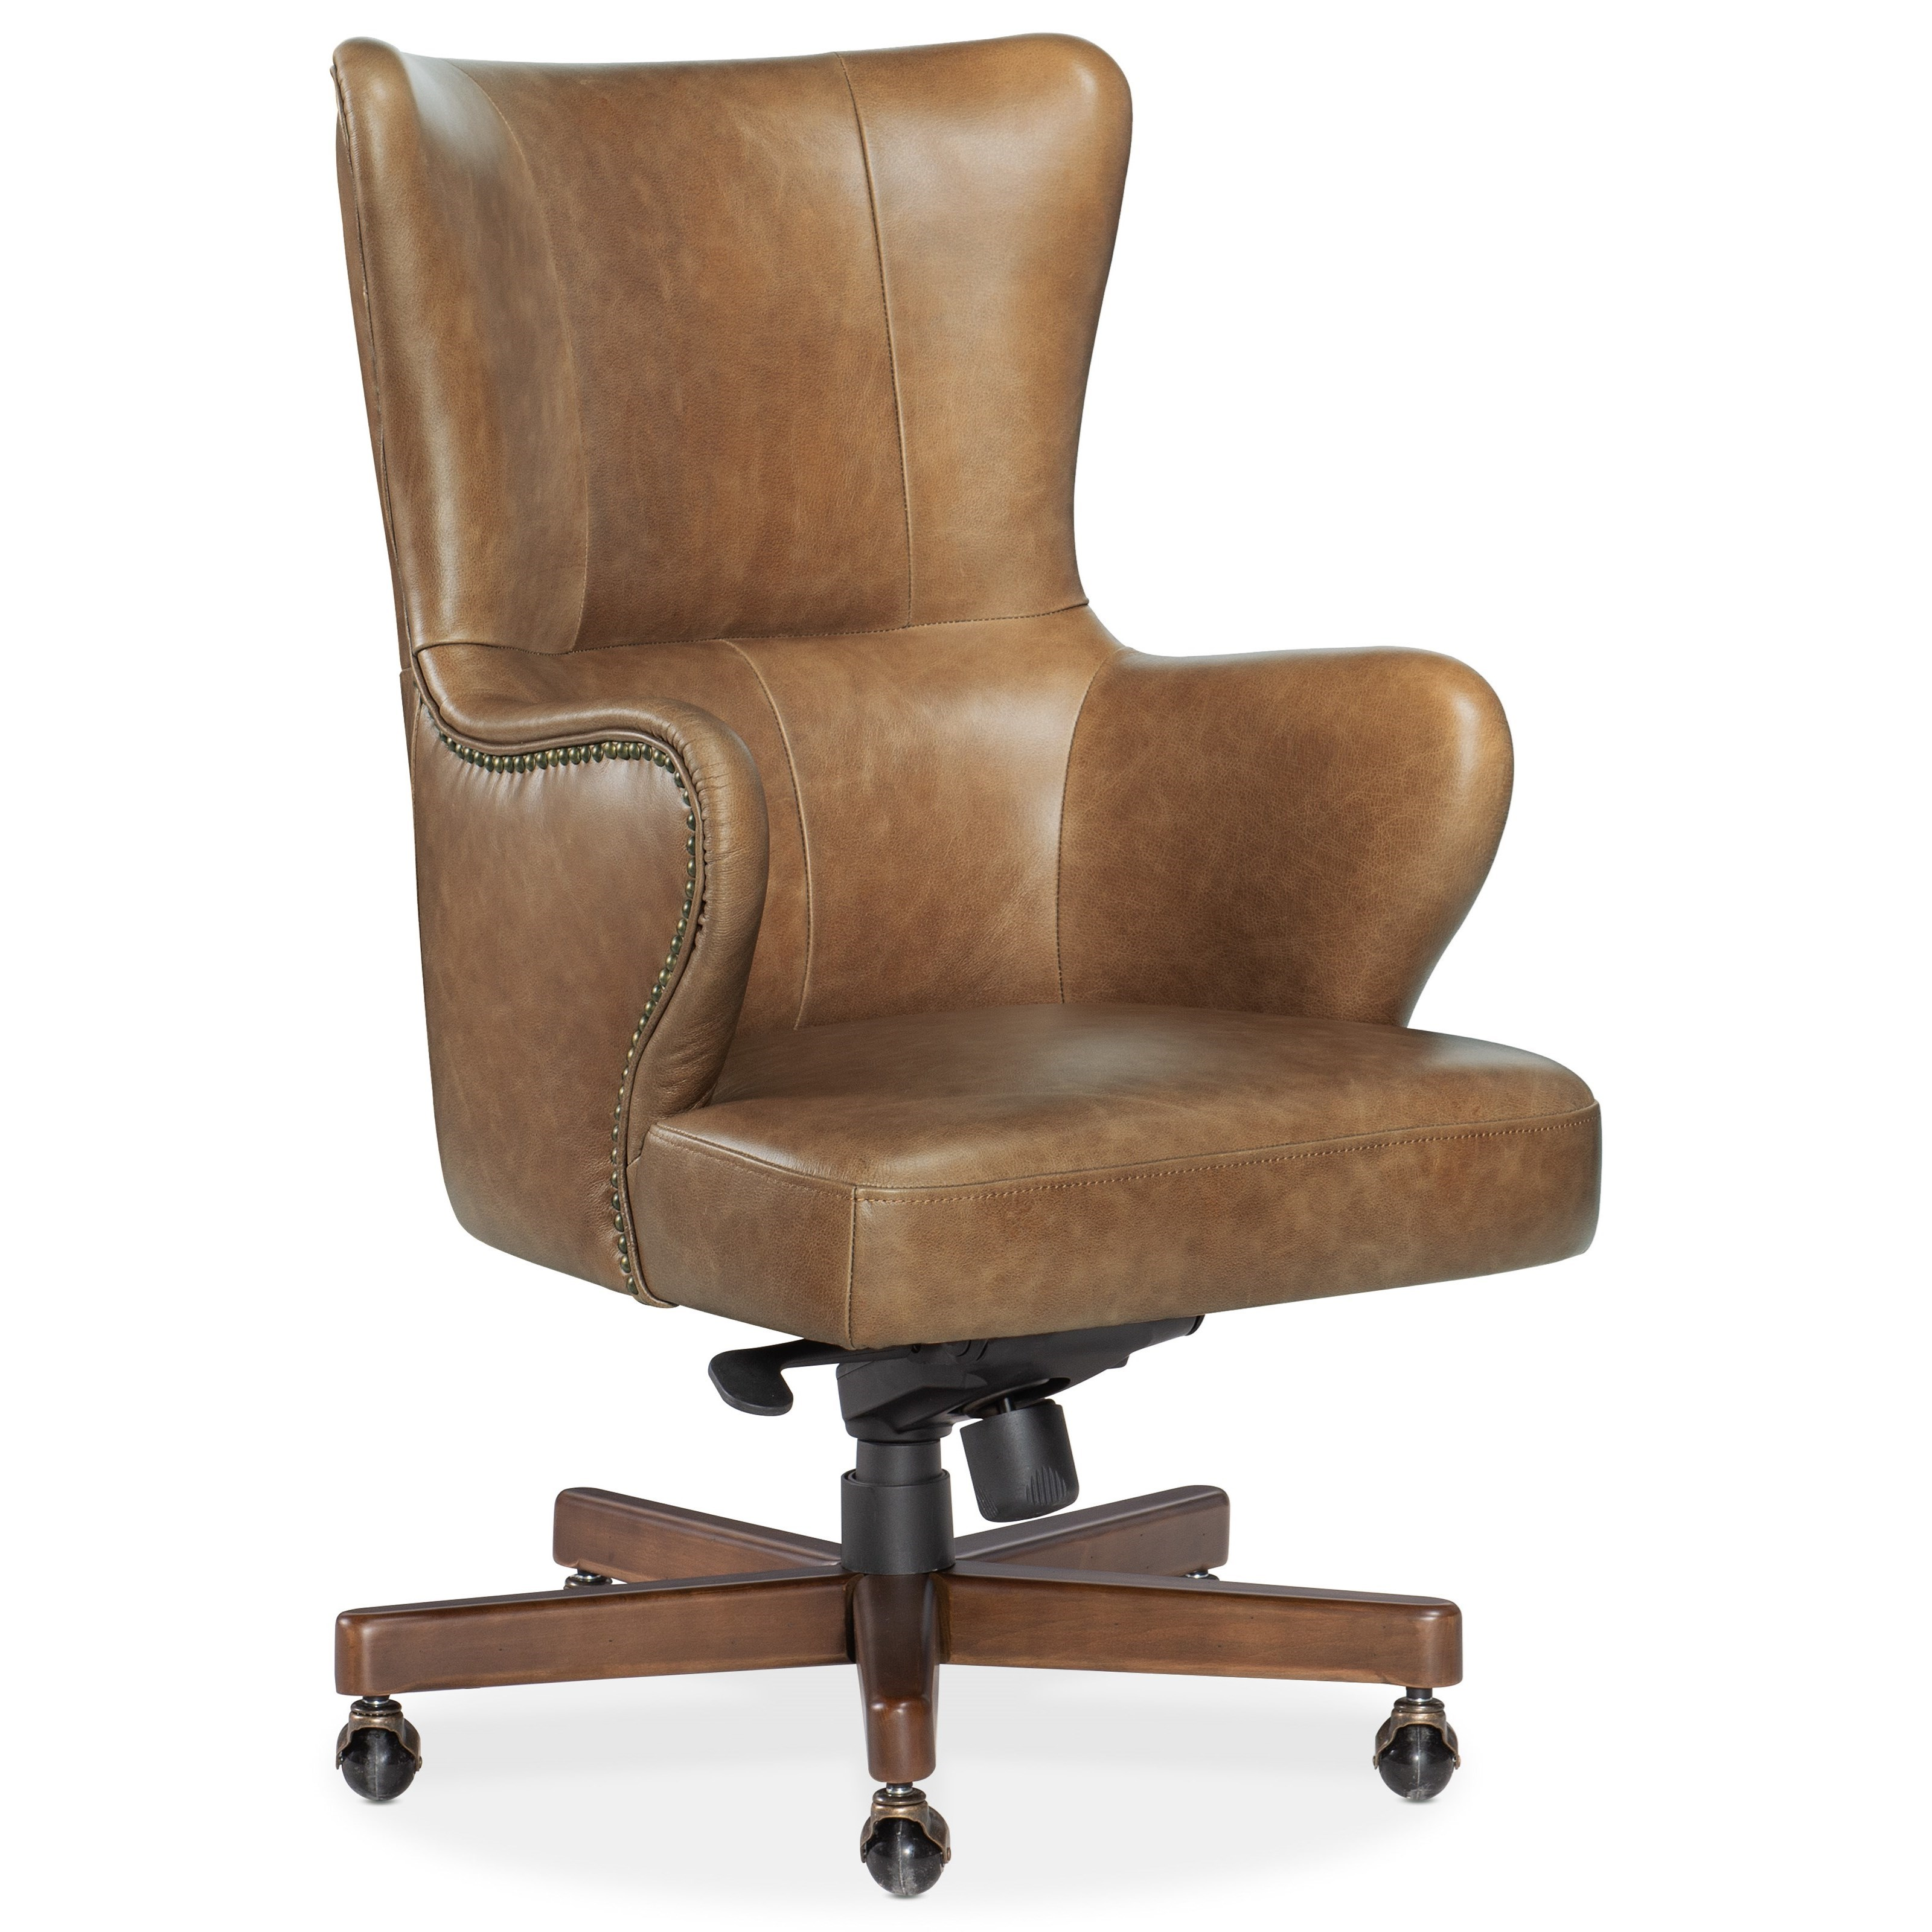 Executive Seating Amelia Executive Swivel Tilt Chair by Hooker Furniture at Zak's Home